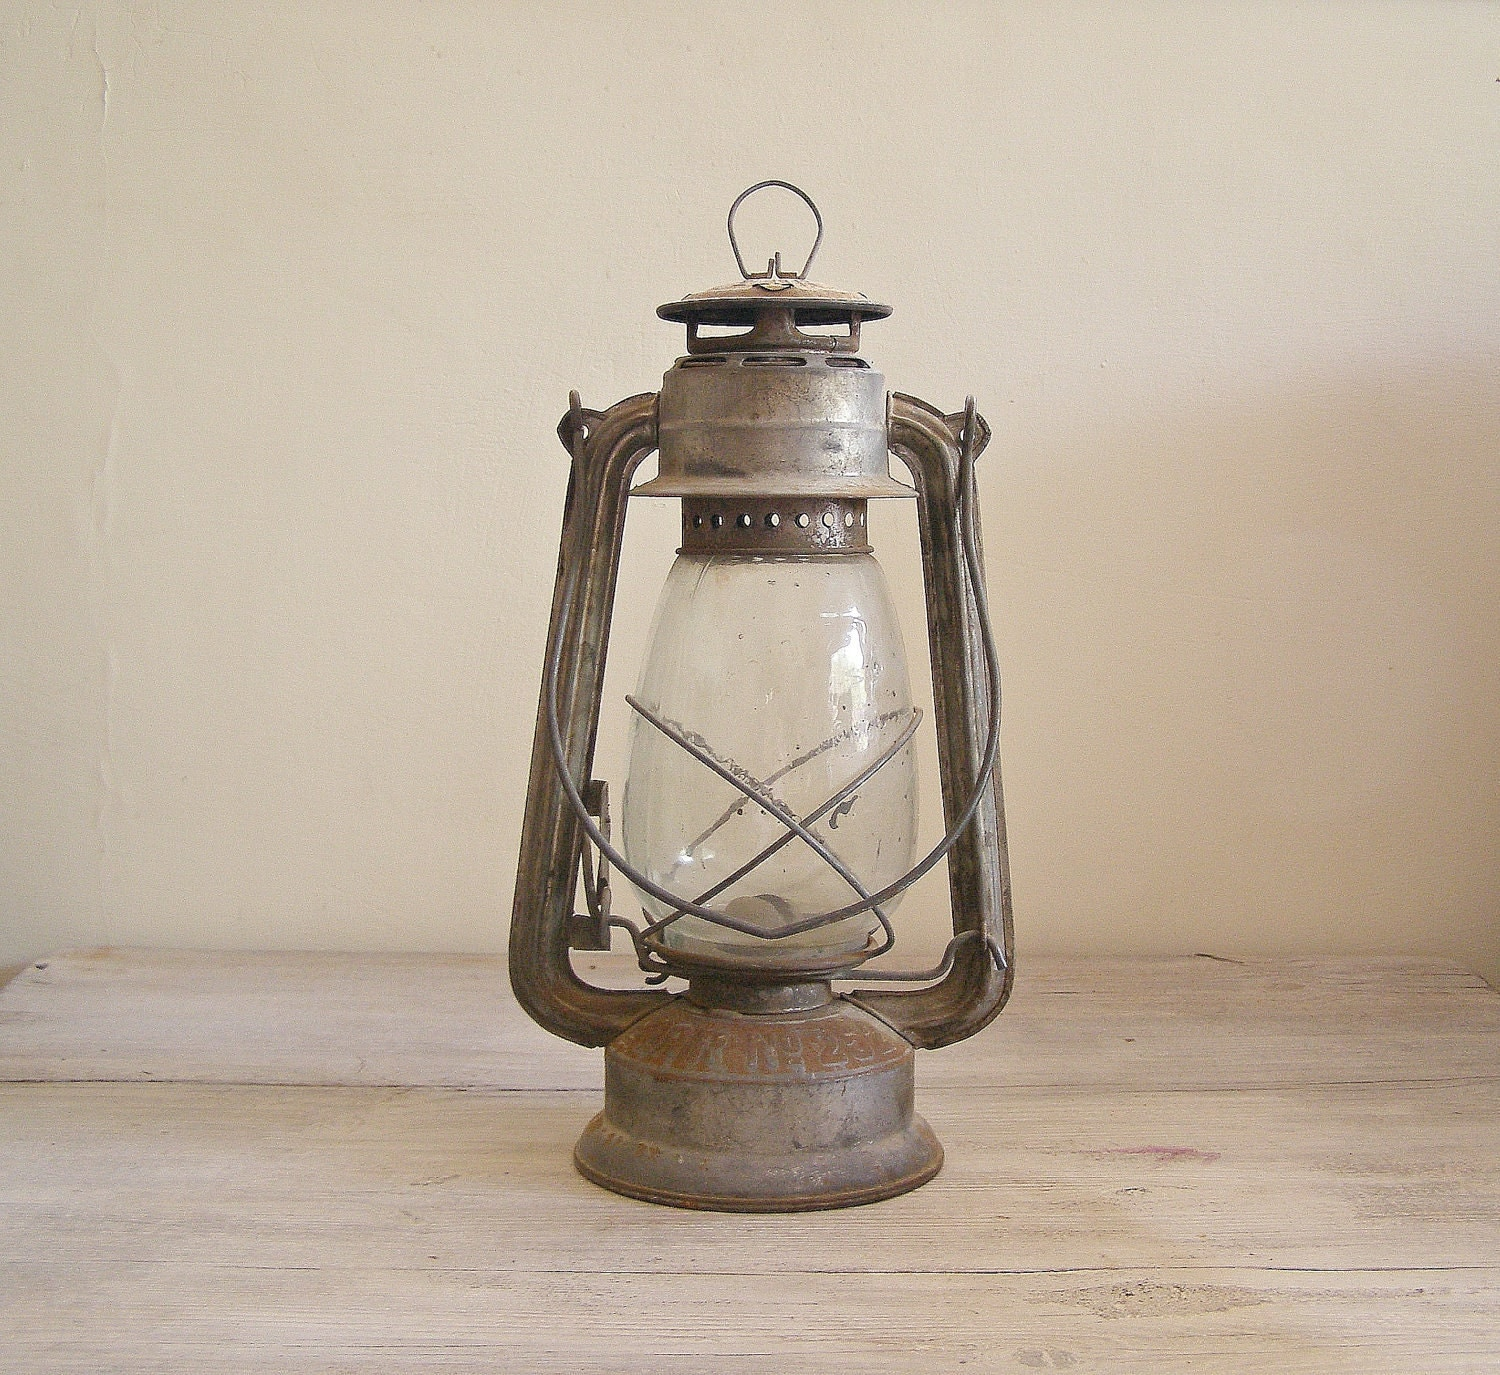 Antique Lantern Lamp Vintage rusted Railroad Lamp